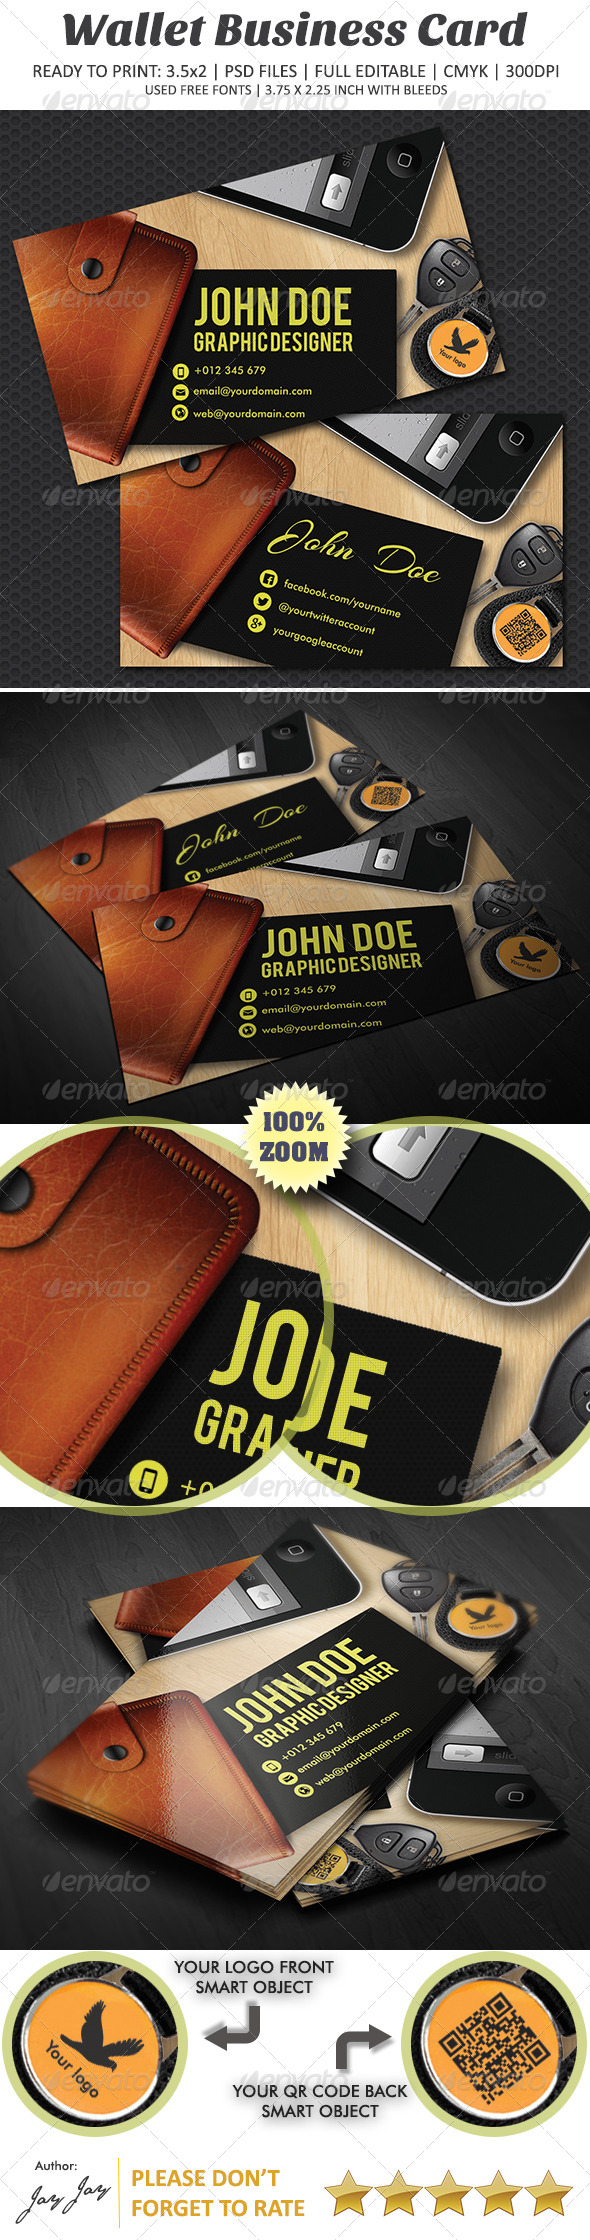 Wallet Business Card - Creative Business Cards